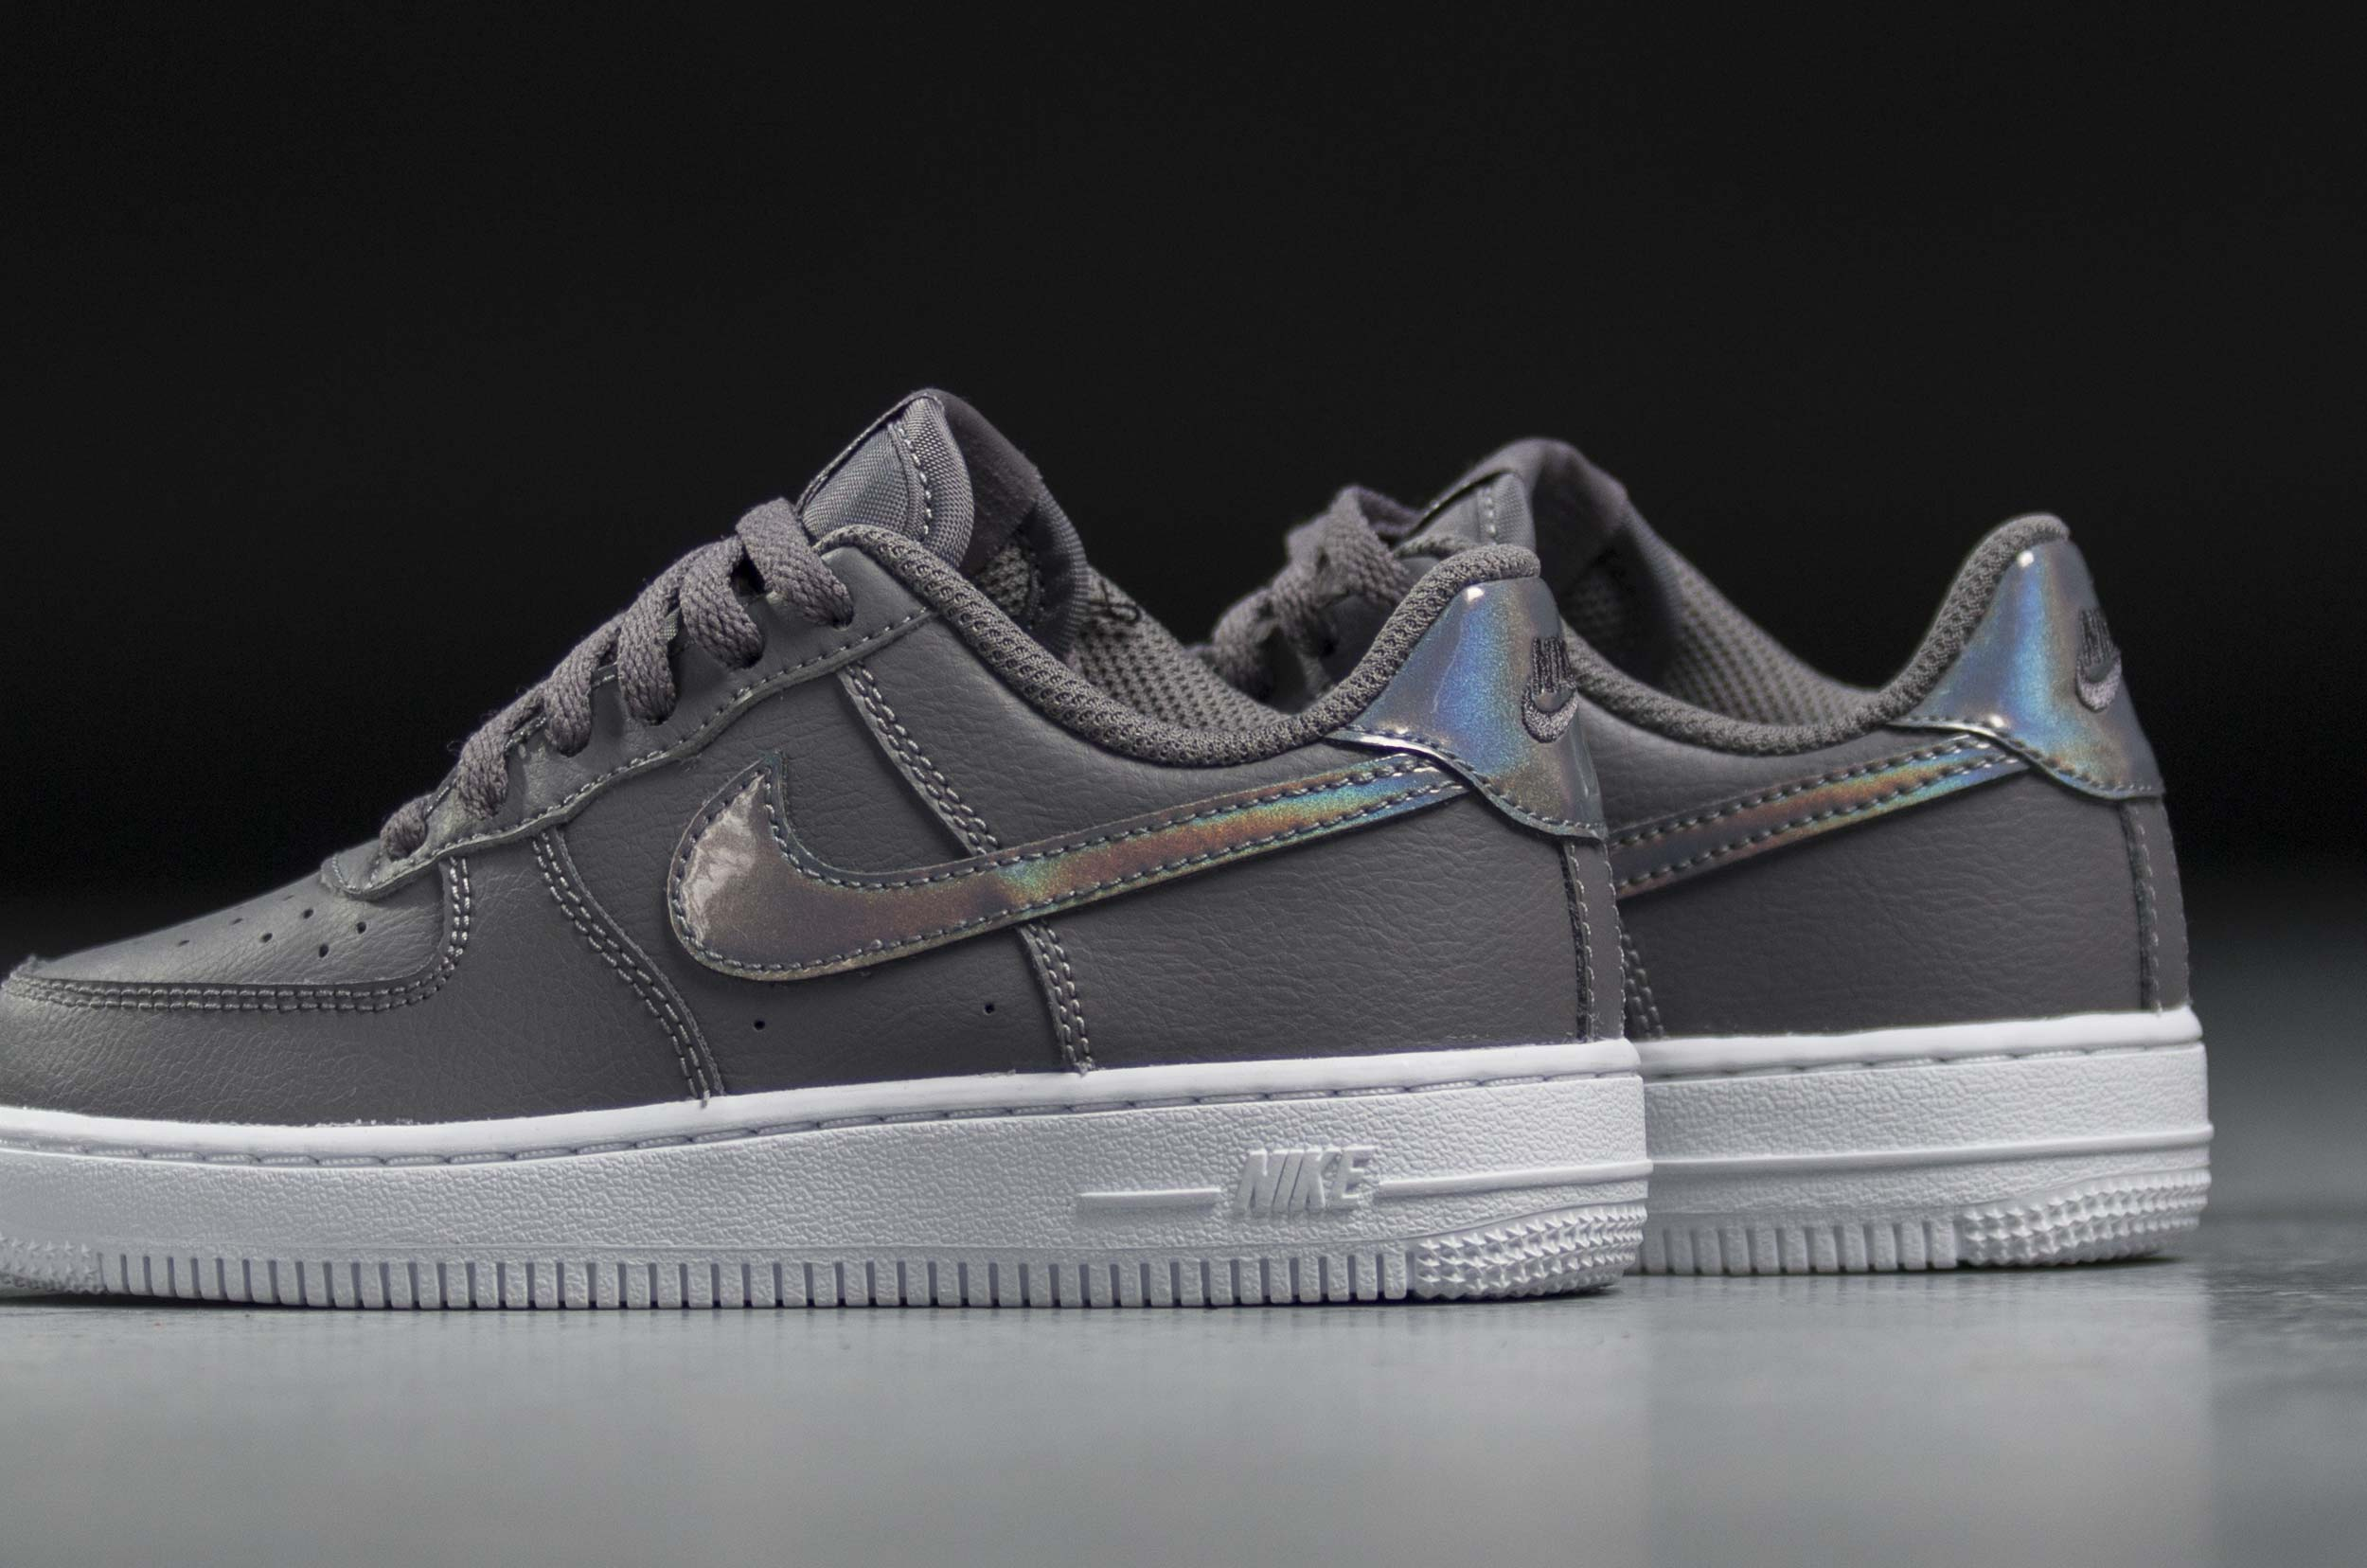 NIKE AIR FORCE 1 PS 314220-019 Ανθρακί